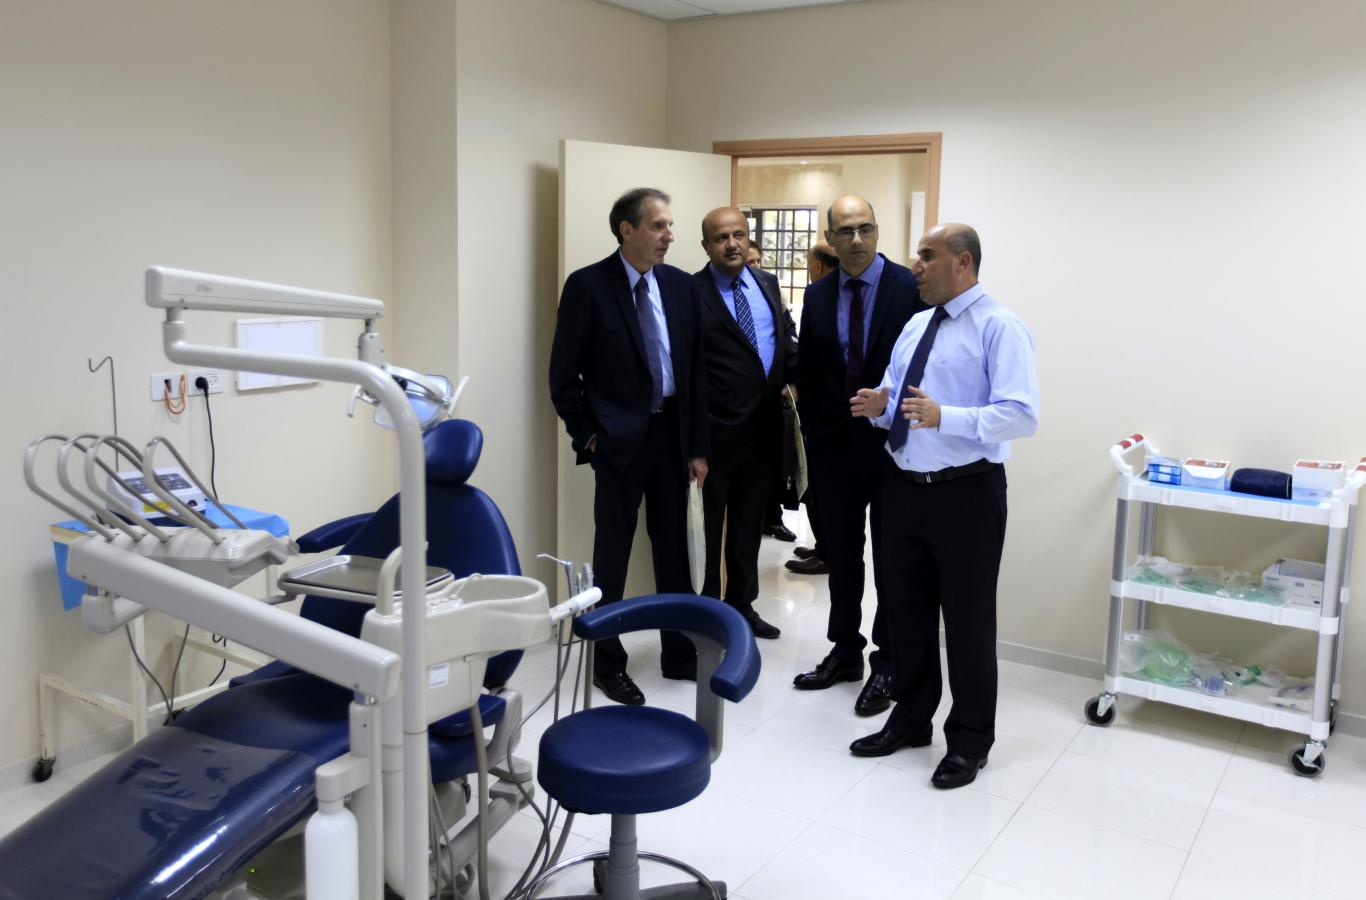 Visiting Faculty of Dentistry